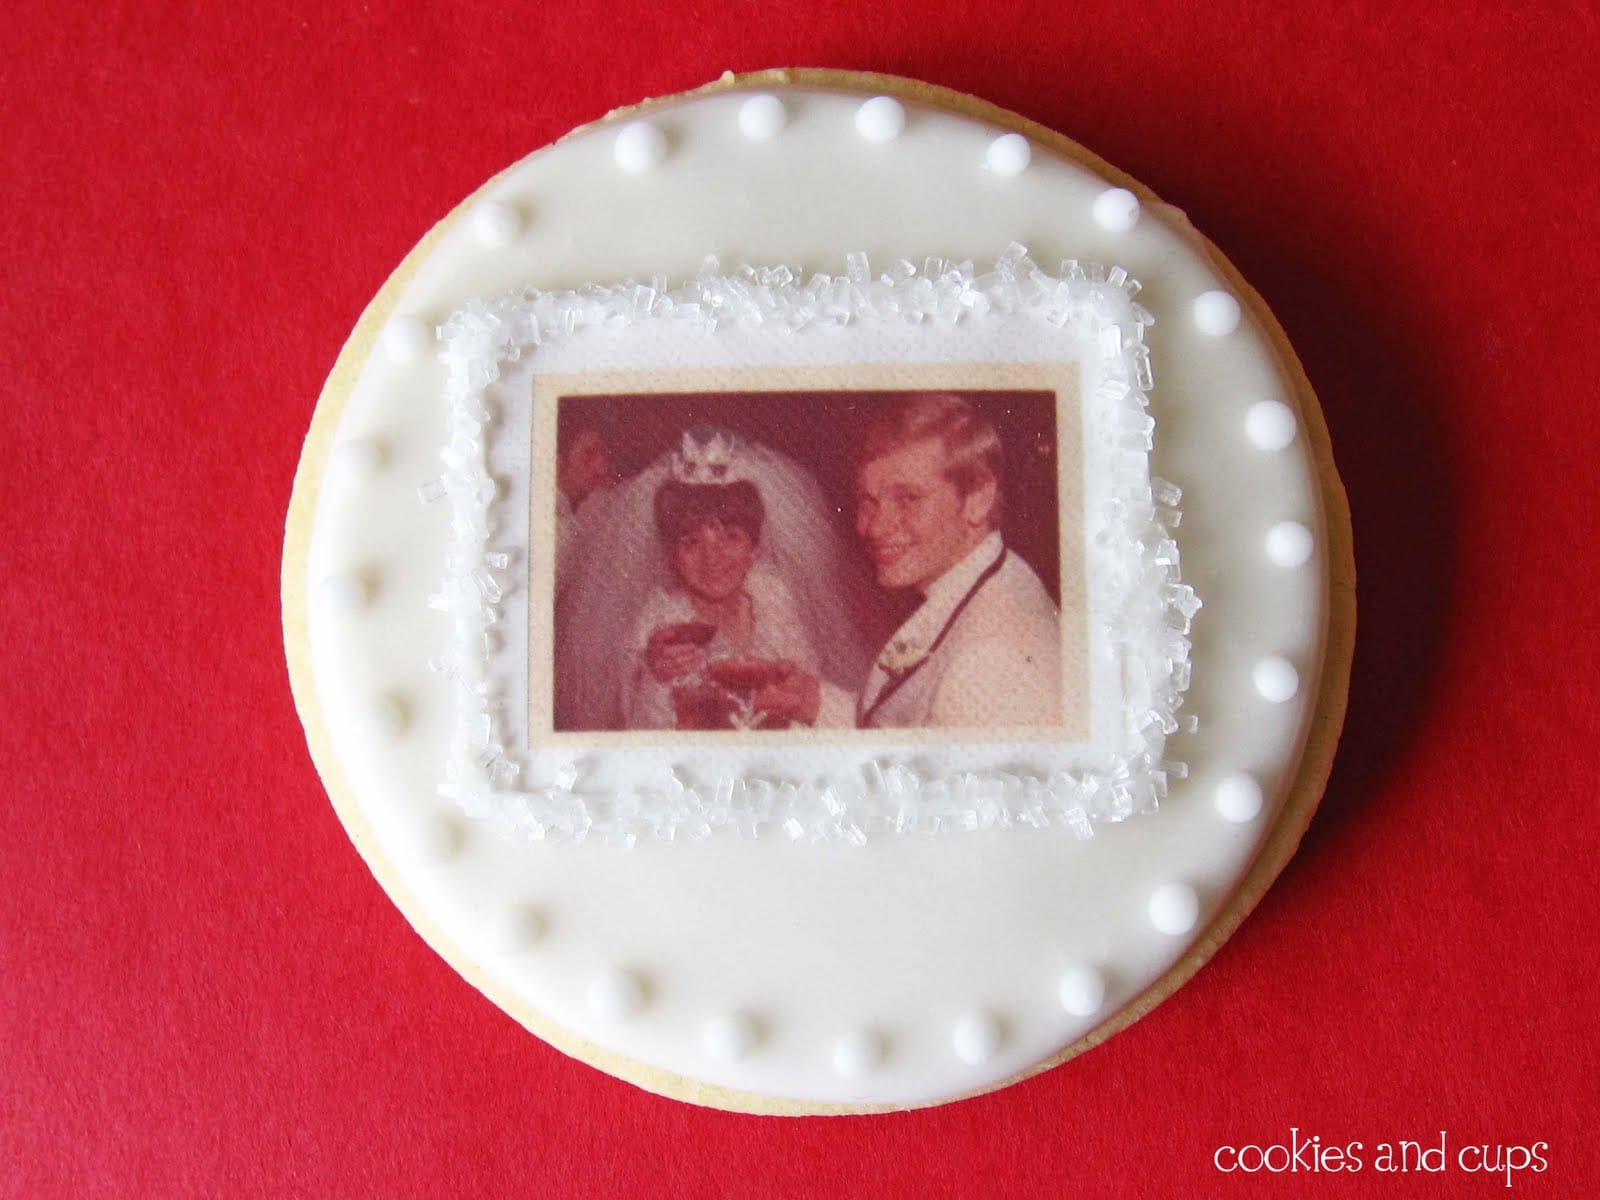 Decorated sugar cookie with anniversary photo on edible sheet